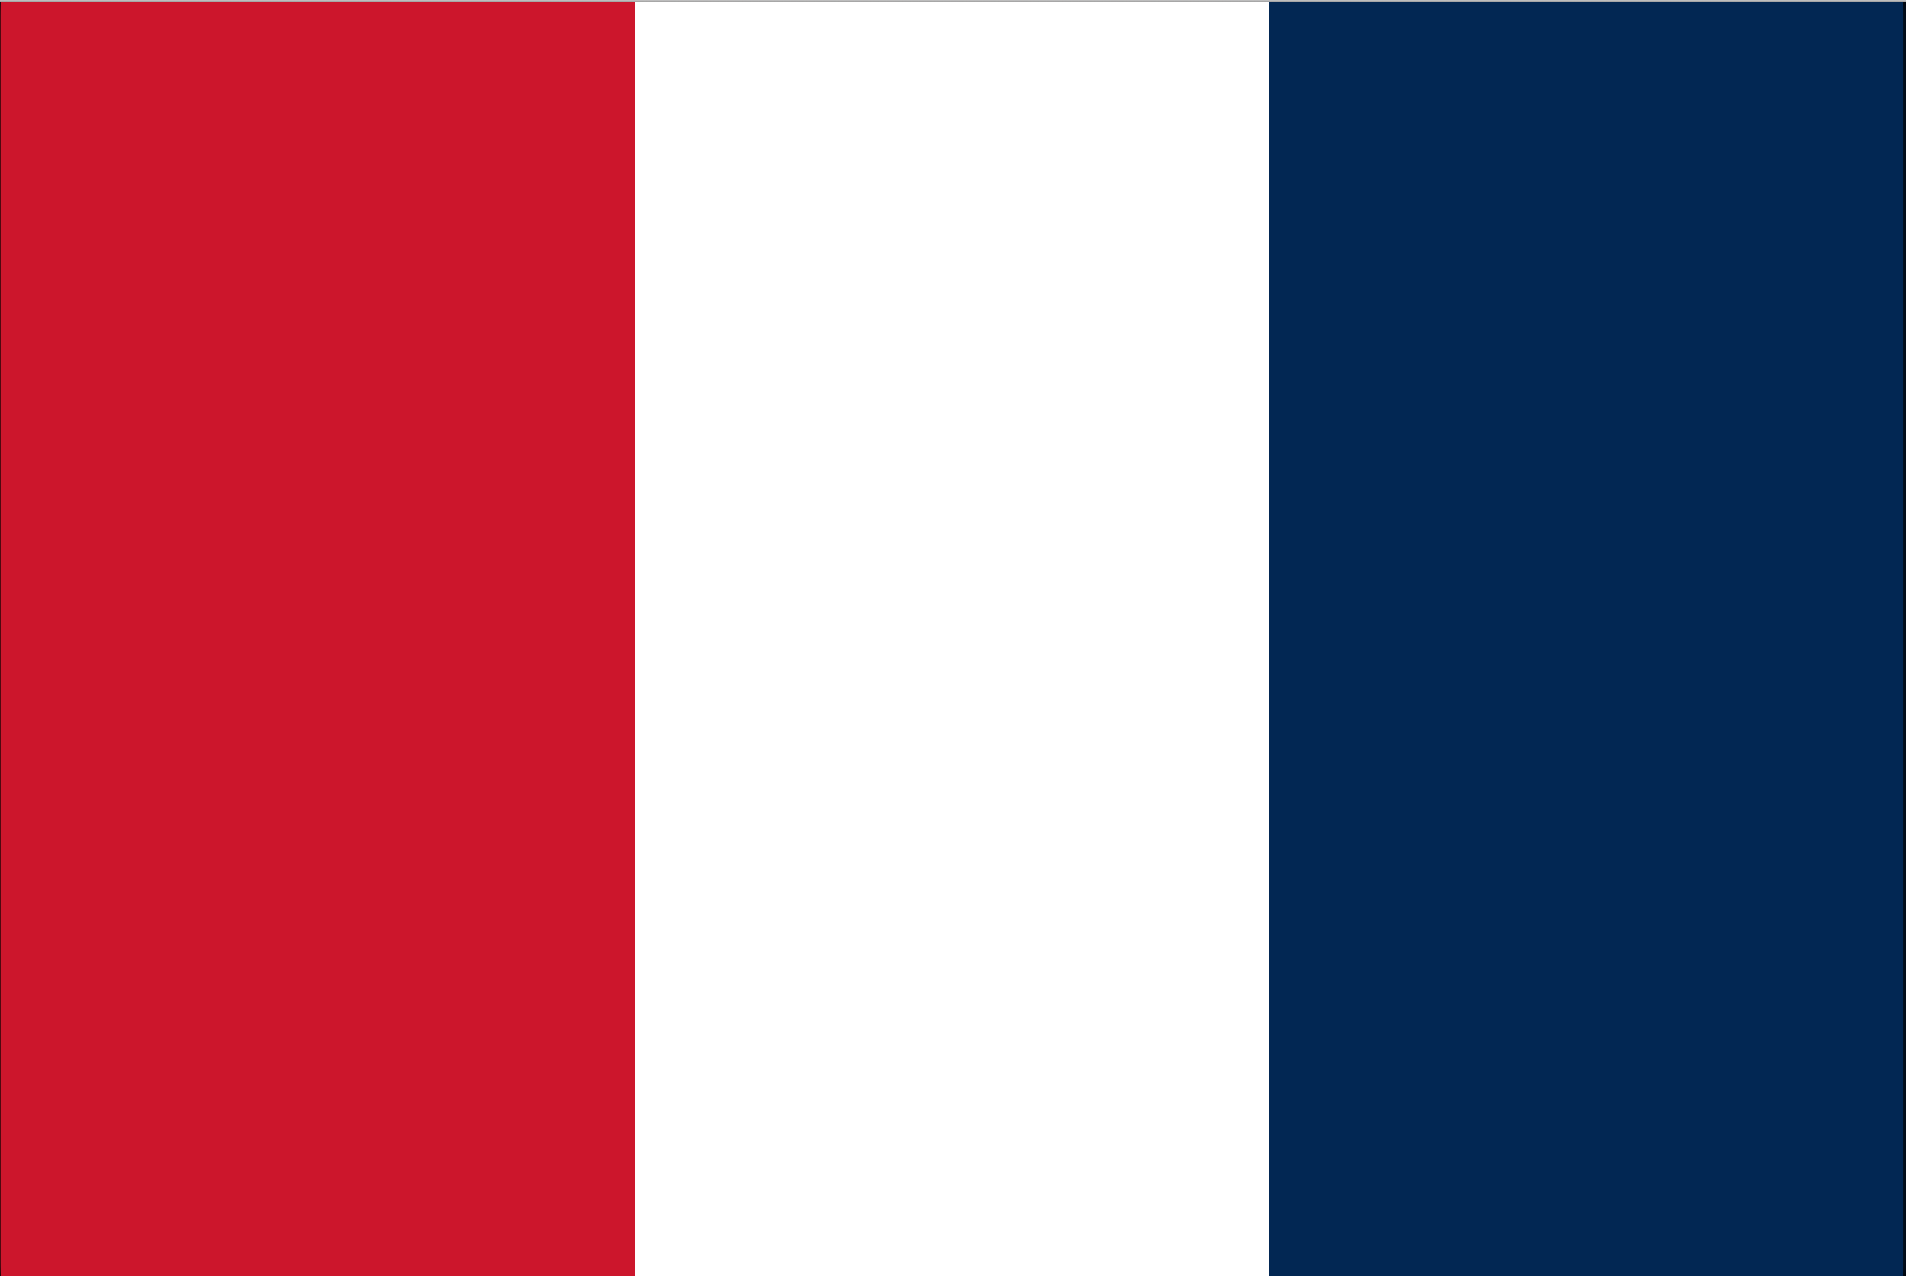 The national flag of France between 1790 and 1794